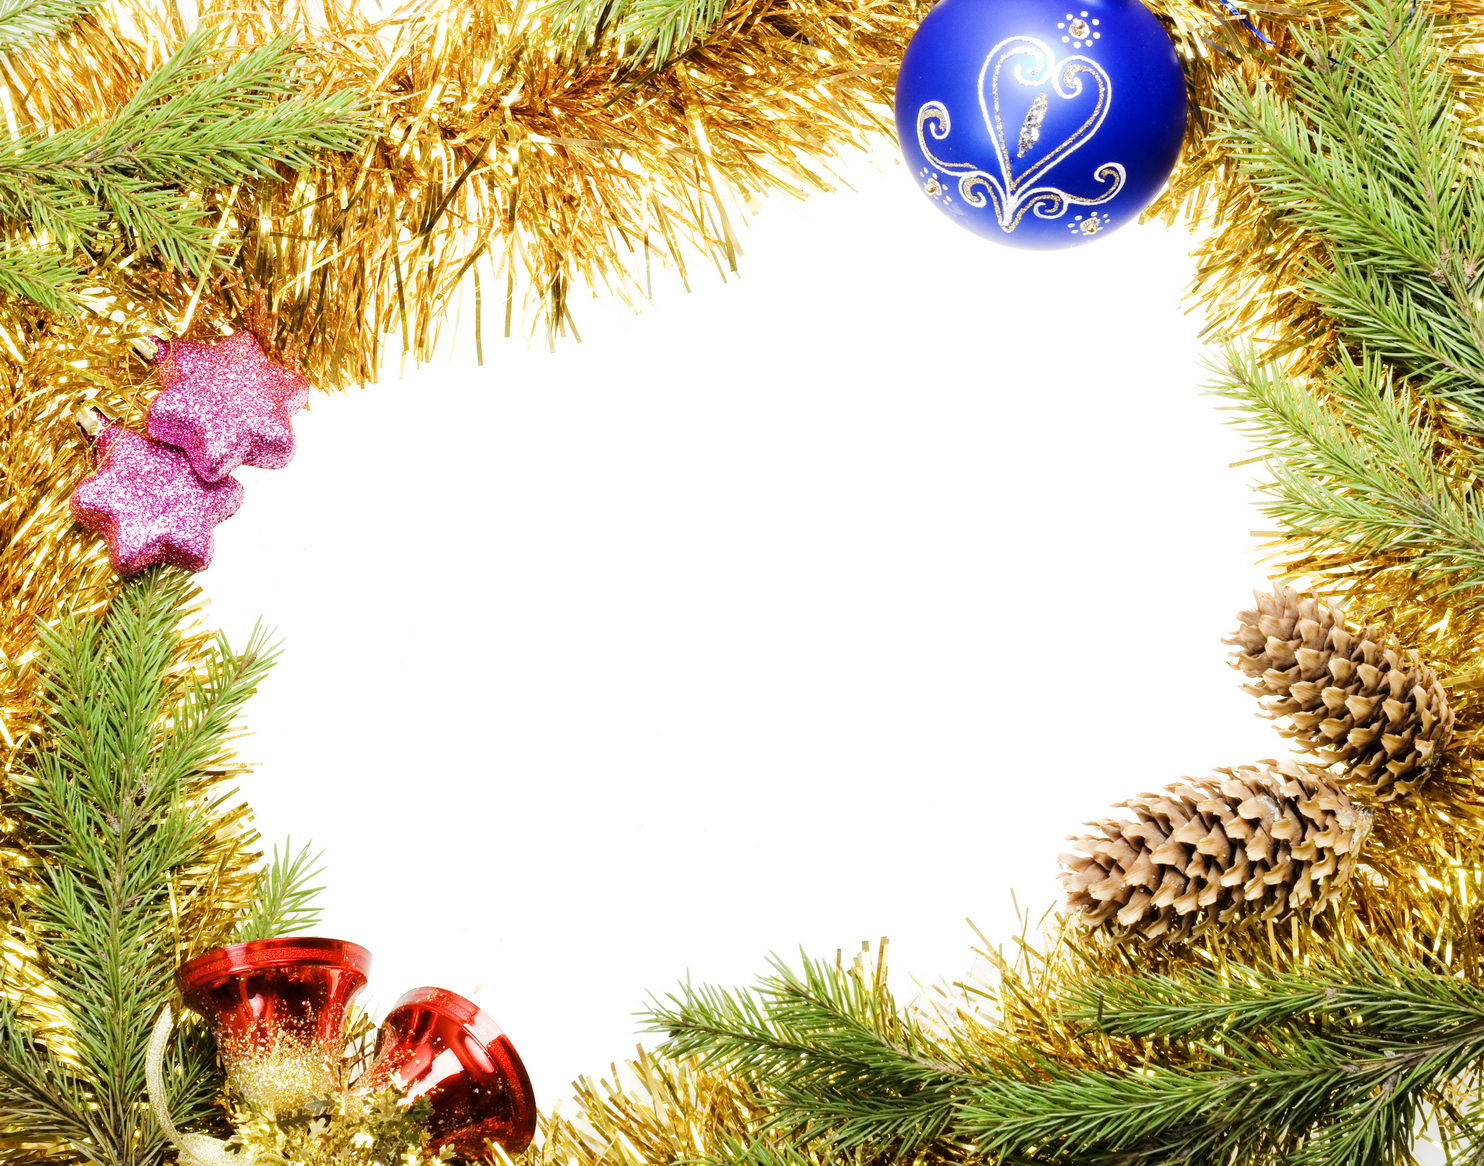 Christmas frame, Year, Isolated, Xmas, Winter, HQ Photo